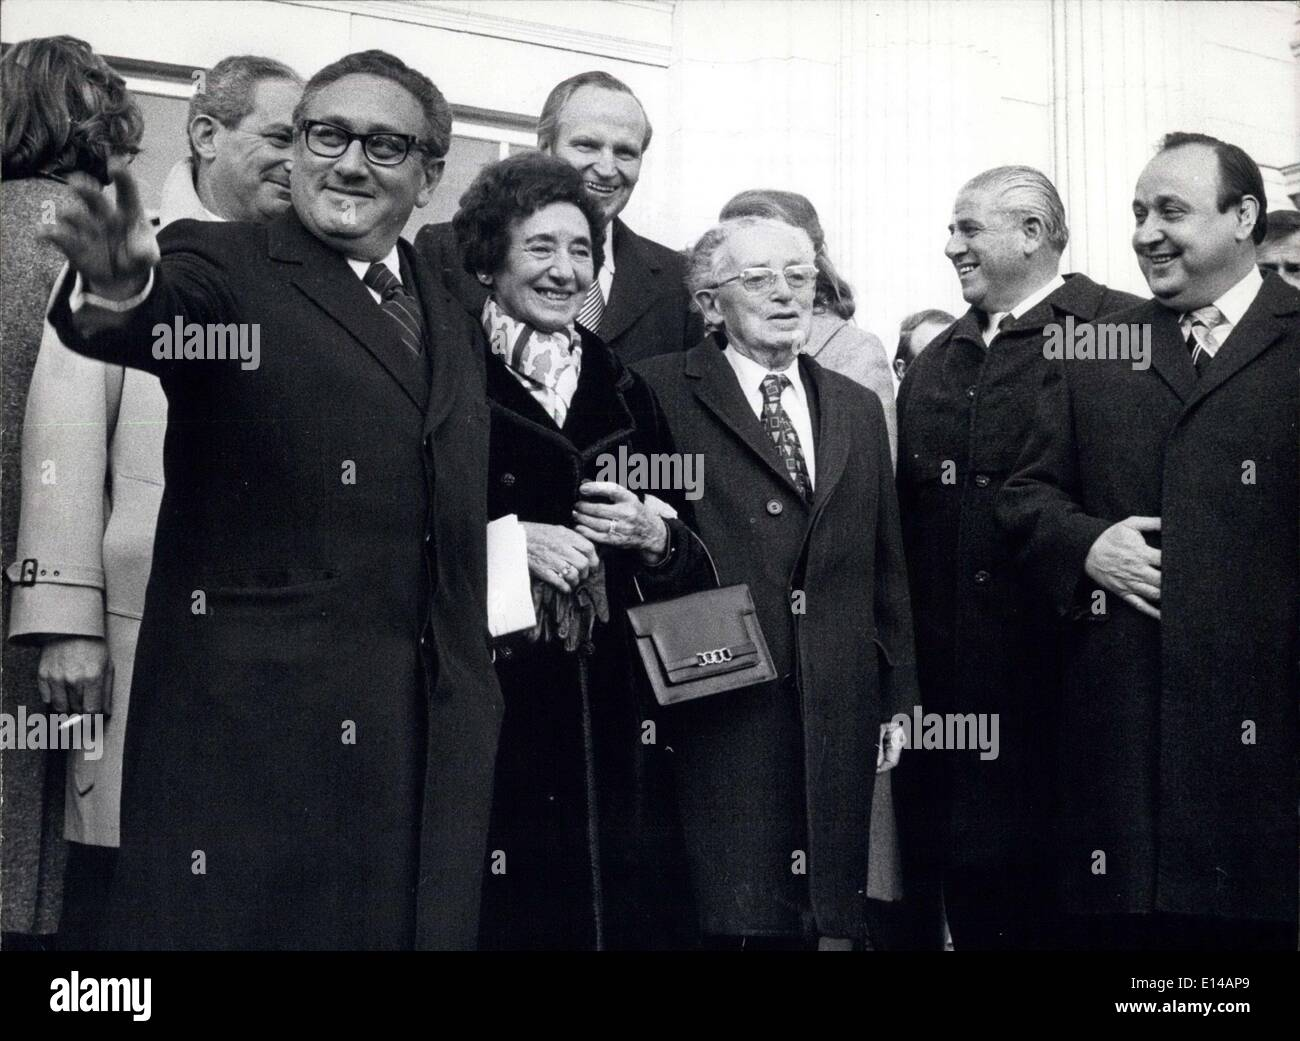 Apr. 17, 2012 - US Foreign Minister Kissinger Visited his Native Town Furth: US Foreign Minister henry Kissinger paid a short visit to his native town Furth (Bavaraia), where he received the golden civic medal, because of his ''passionate efforts for peace''/ The minister, who was accompanied by his wife and his parents Louis and Paula Kissinger, was rewarded this medal already two years ago, but had not found the time to come to Furth before. Henry Kissinger was born iun Furth (near Nuremberg) in 1923 and hat to emigrate with his parents on the age of 14 because of Nazi pursuit - Stock Image